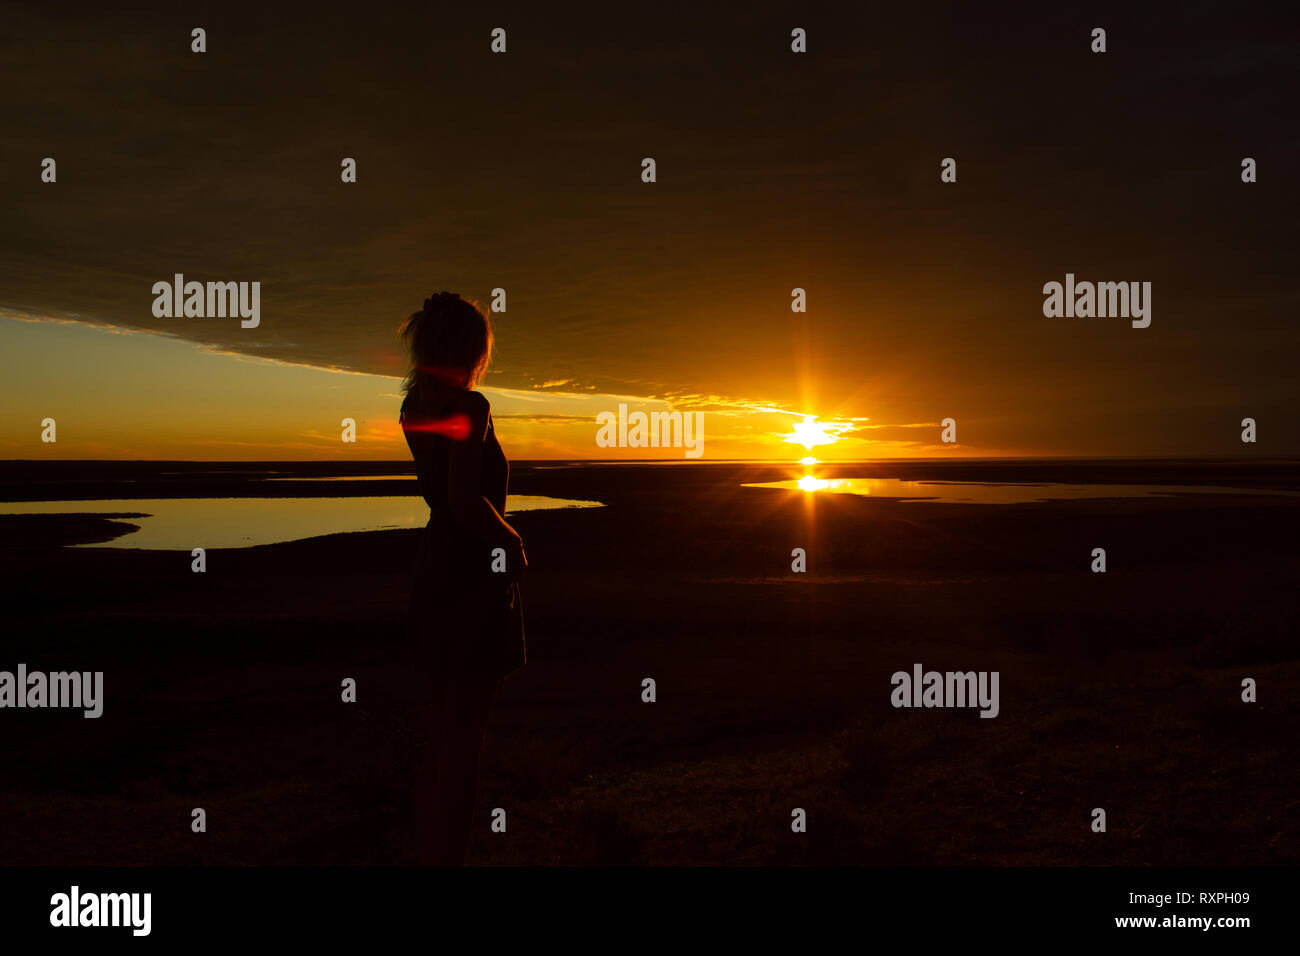 jung women enjoying beautiful sunset in the australian outback with 3 lakes, Gladstone scenic lookout, Australia - Stock Image